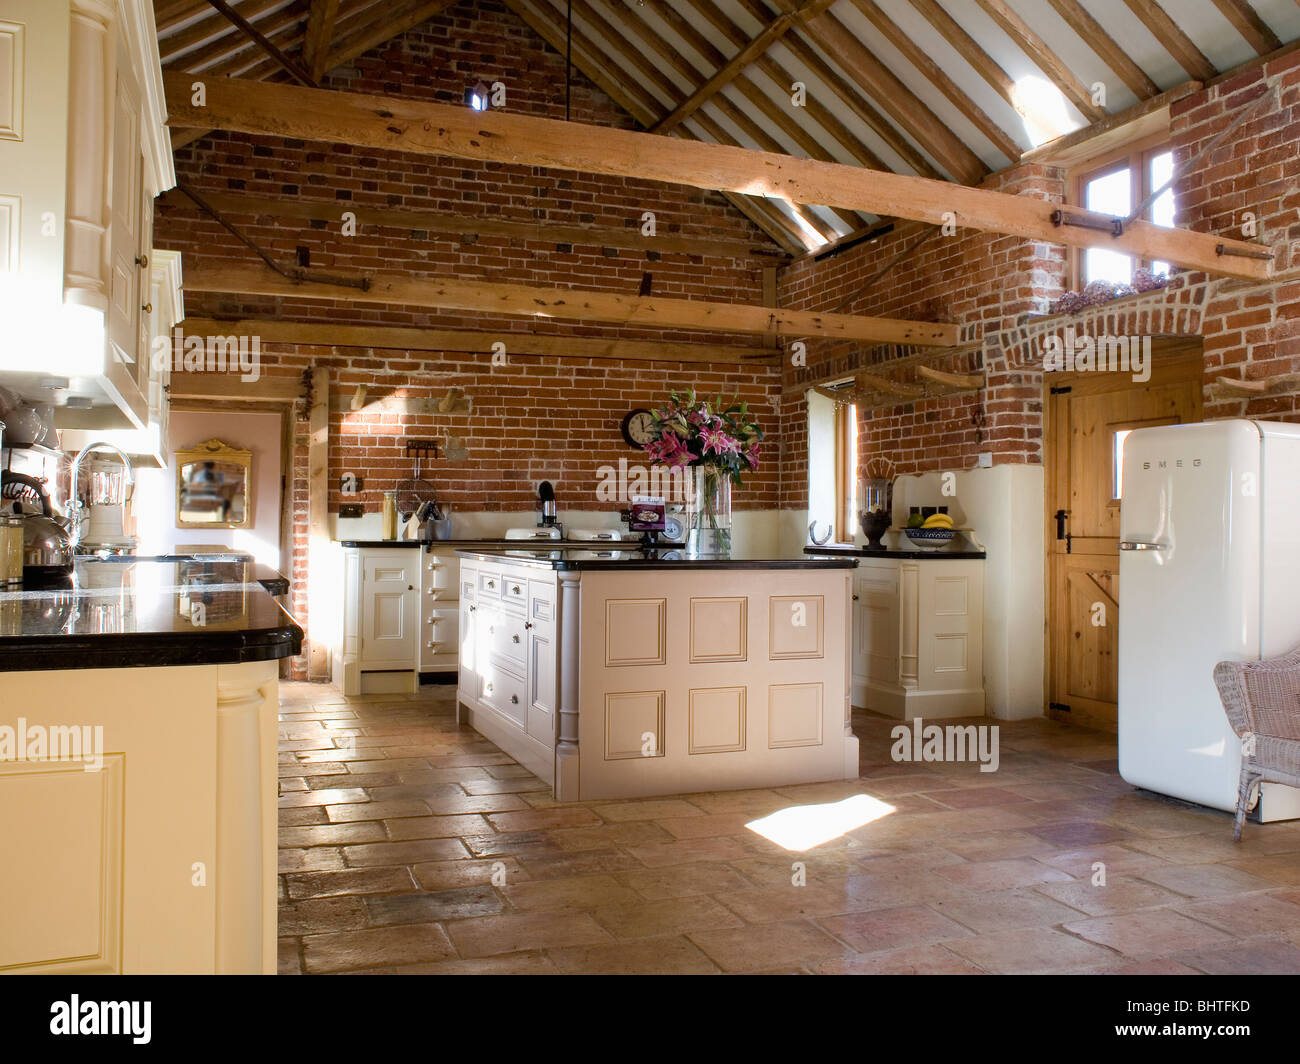 Stone Flagged Floor And Island Unit In Large Barn Conversion Kitchen With  Beamed Apex Ceiling